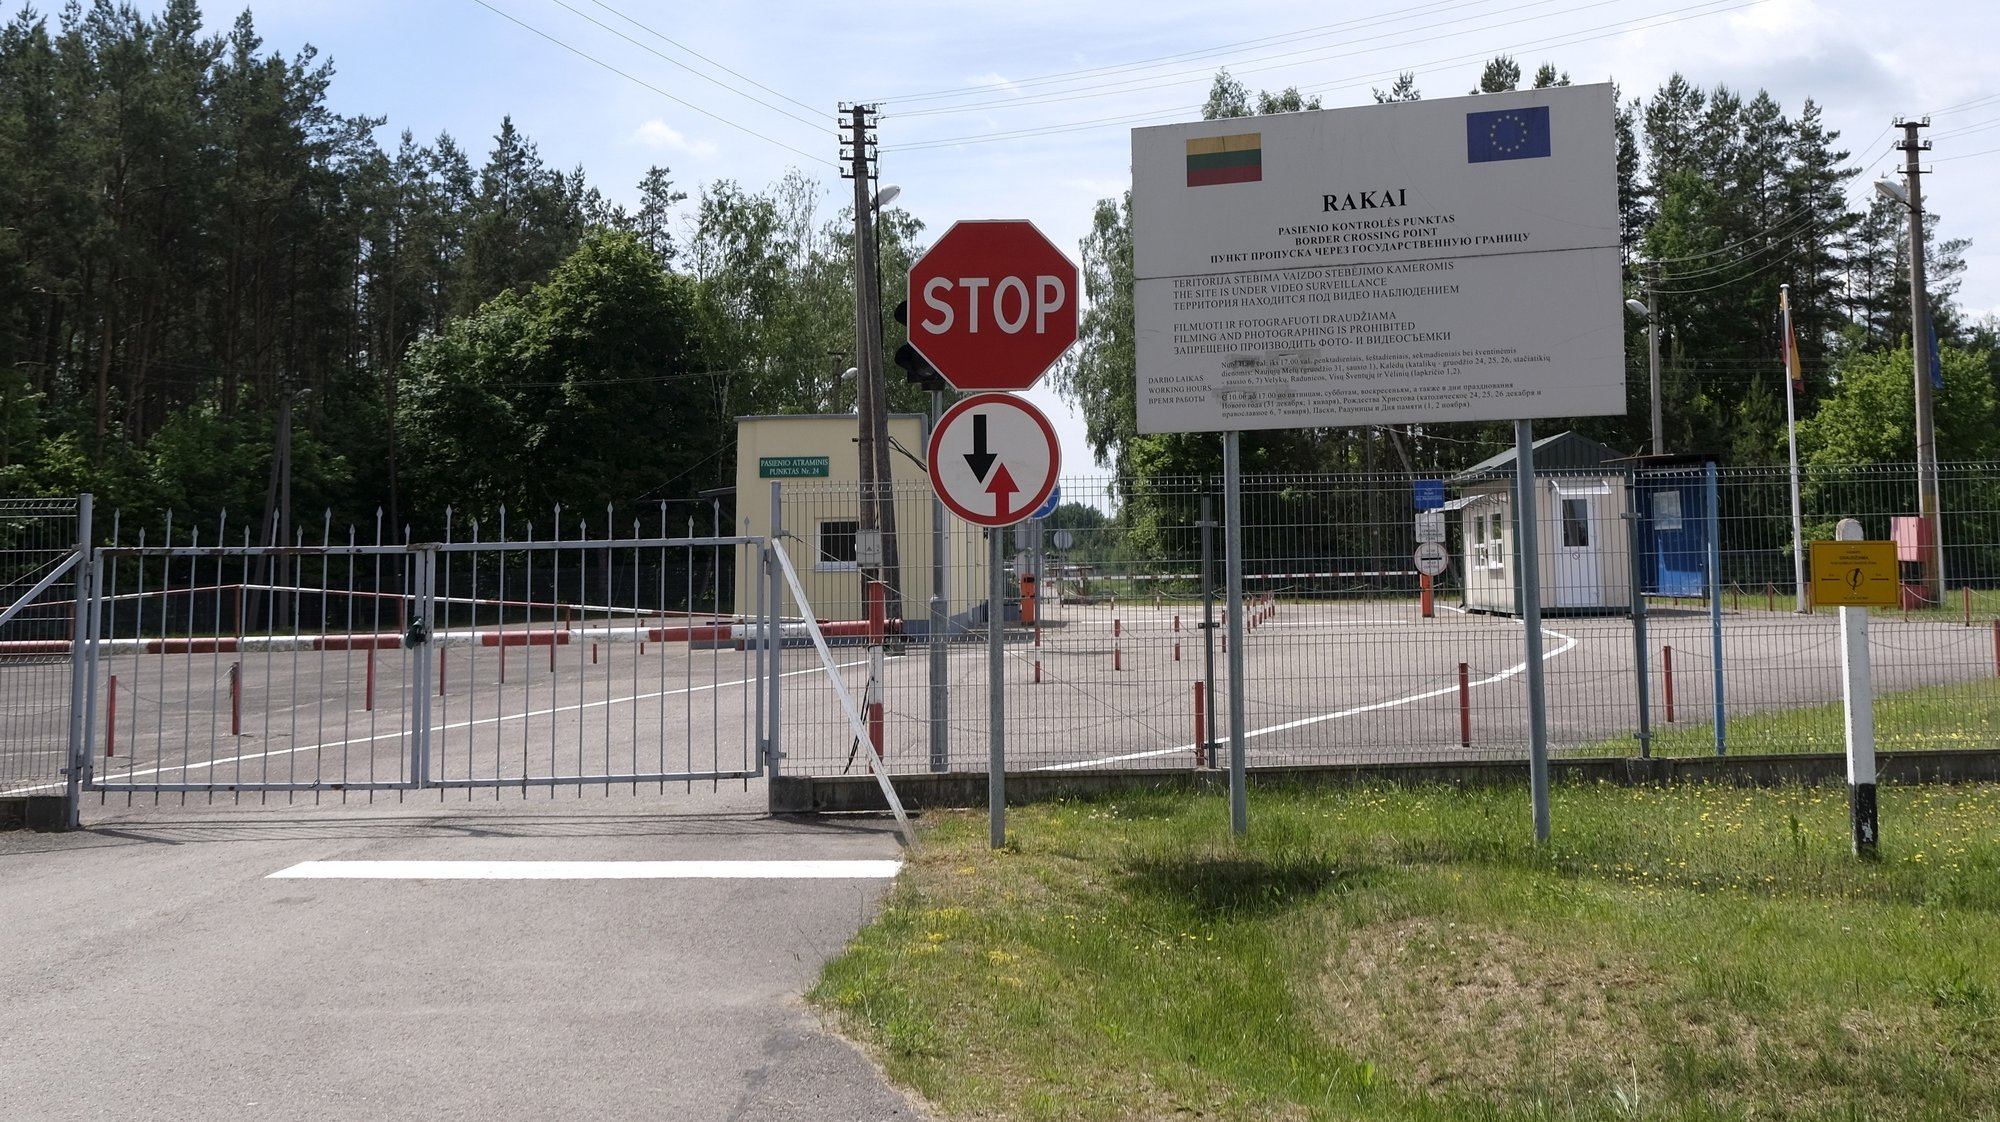 epa09274906 A border crossing point between Rakai, in Lithuania, and Petjulevci, in Belarus, is temporarily closed due to the measures to curb the spreading of the Covid-19 pandemic, in Rakai, Lithuania, 15 June 2016. According to official Lithuanian data, more than 380 illegal migrants from Belarus tried to enter Lithuania unril now in this year. The number is almost five times higher than in the entire year 2020.  EPA/VALDA KALNINA